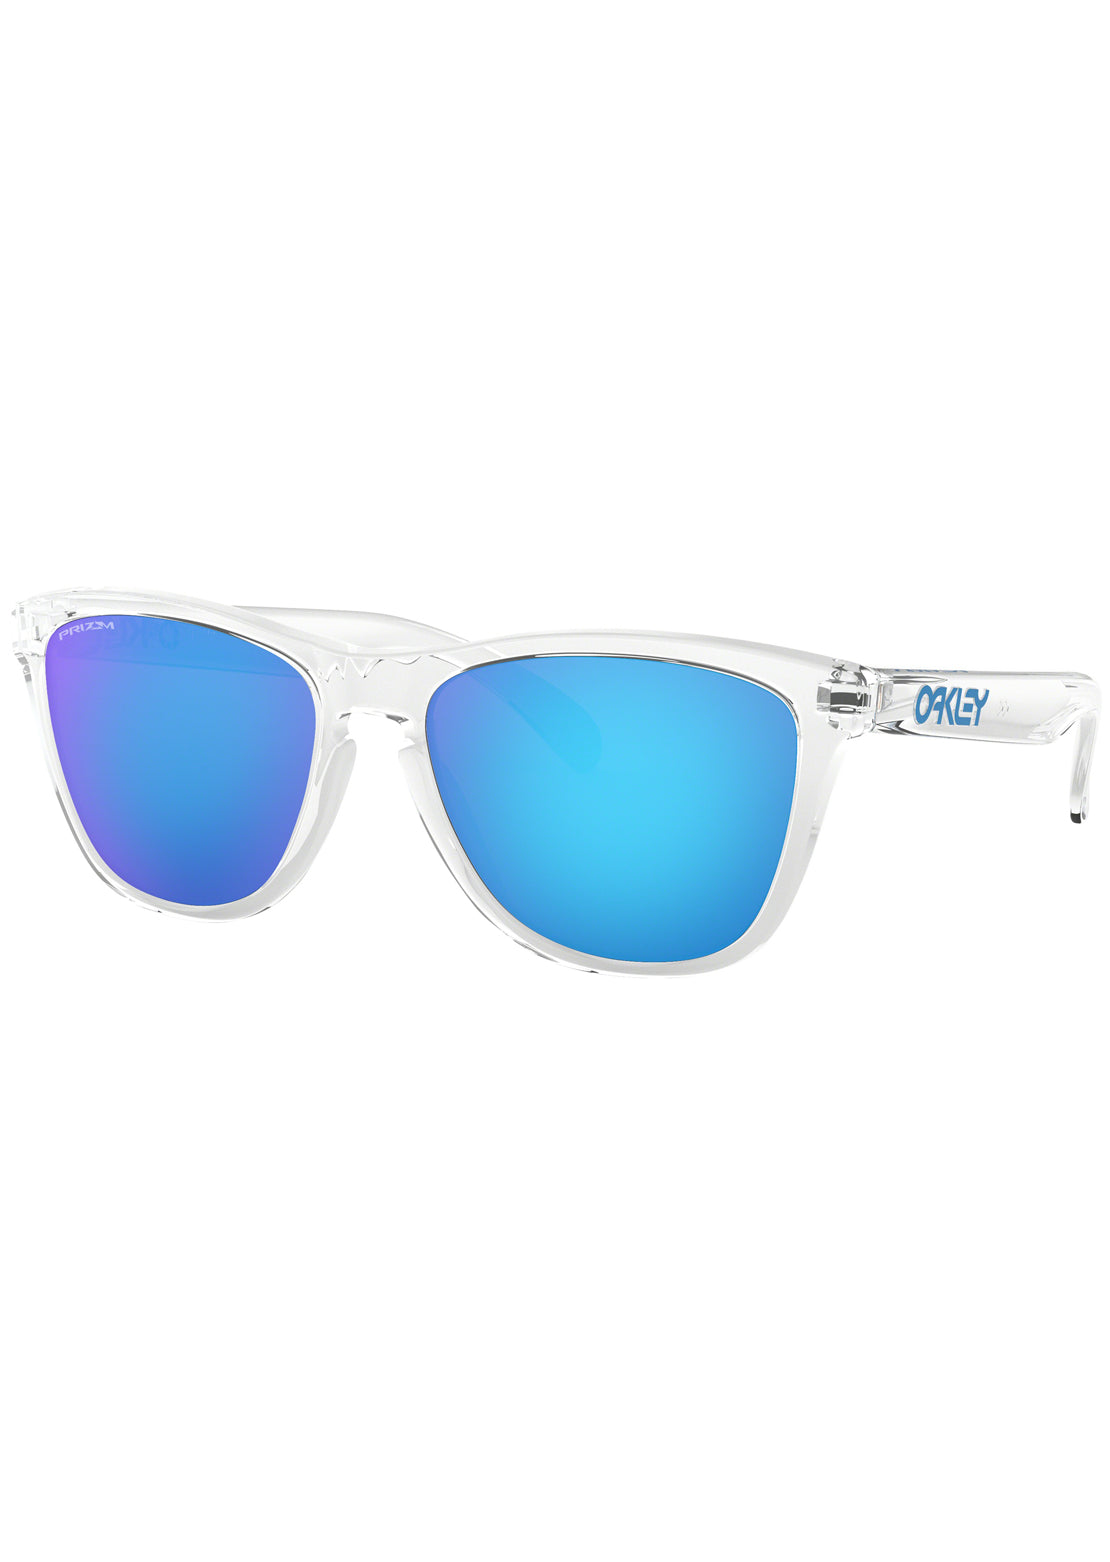 Oakley Men's Frogskins Sunglasses Crystal Clear/Prizm Sapphire Iridium